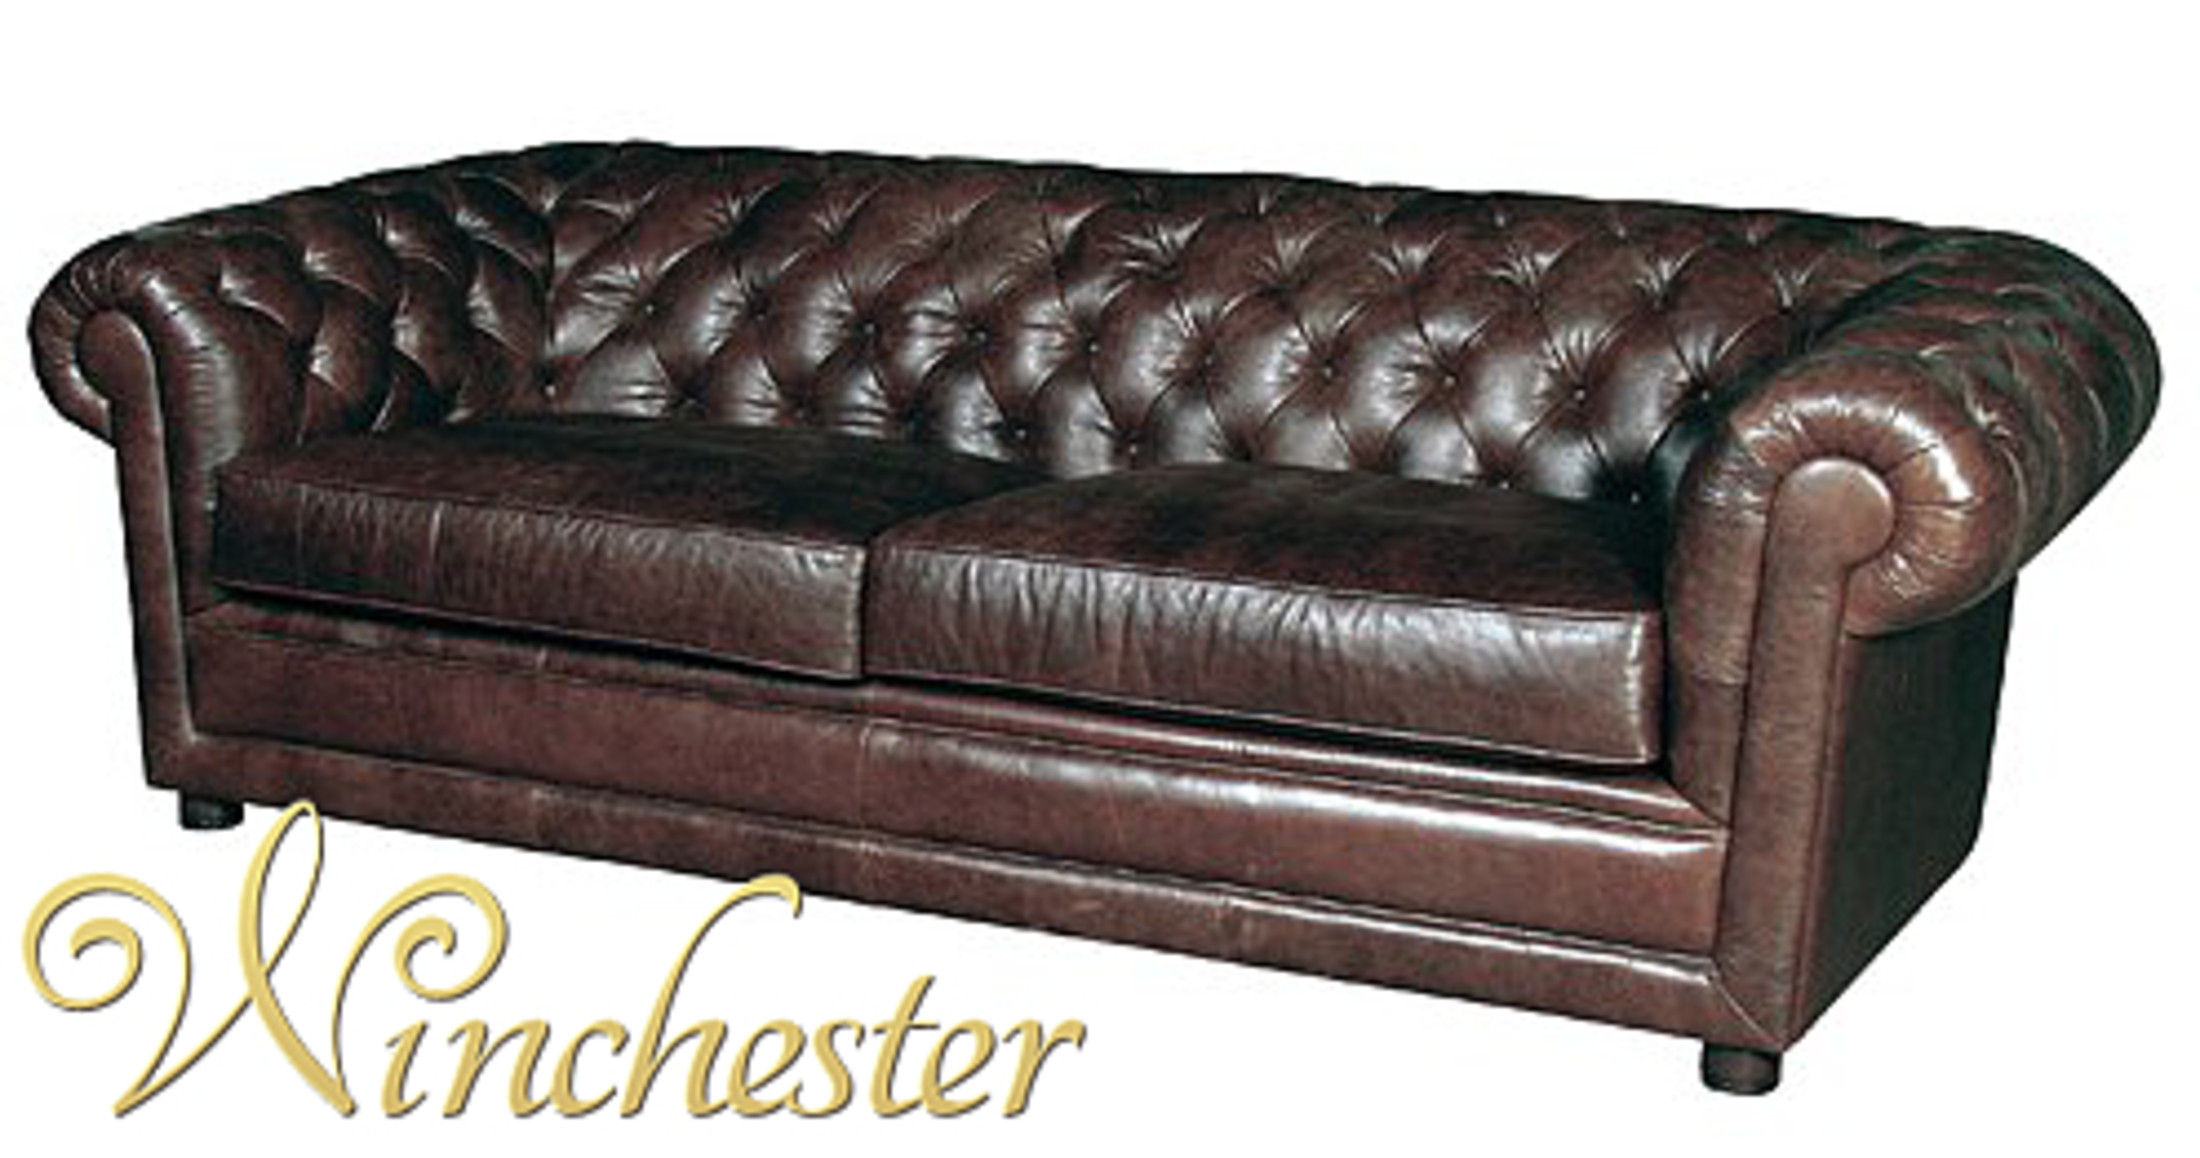 Chamberlain Chesterfield 3 Seater Leather Sofa Settee Wc